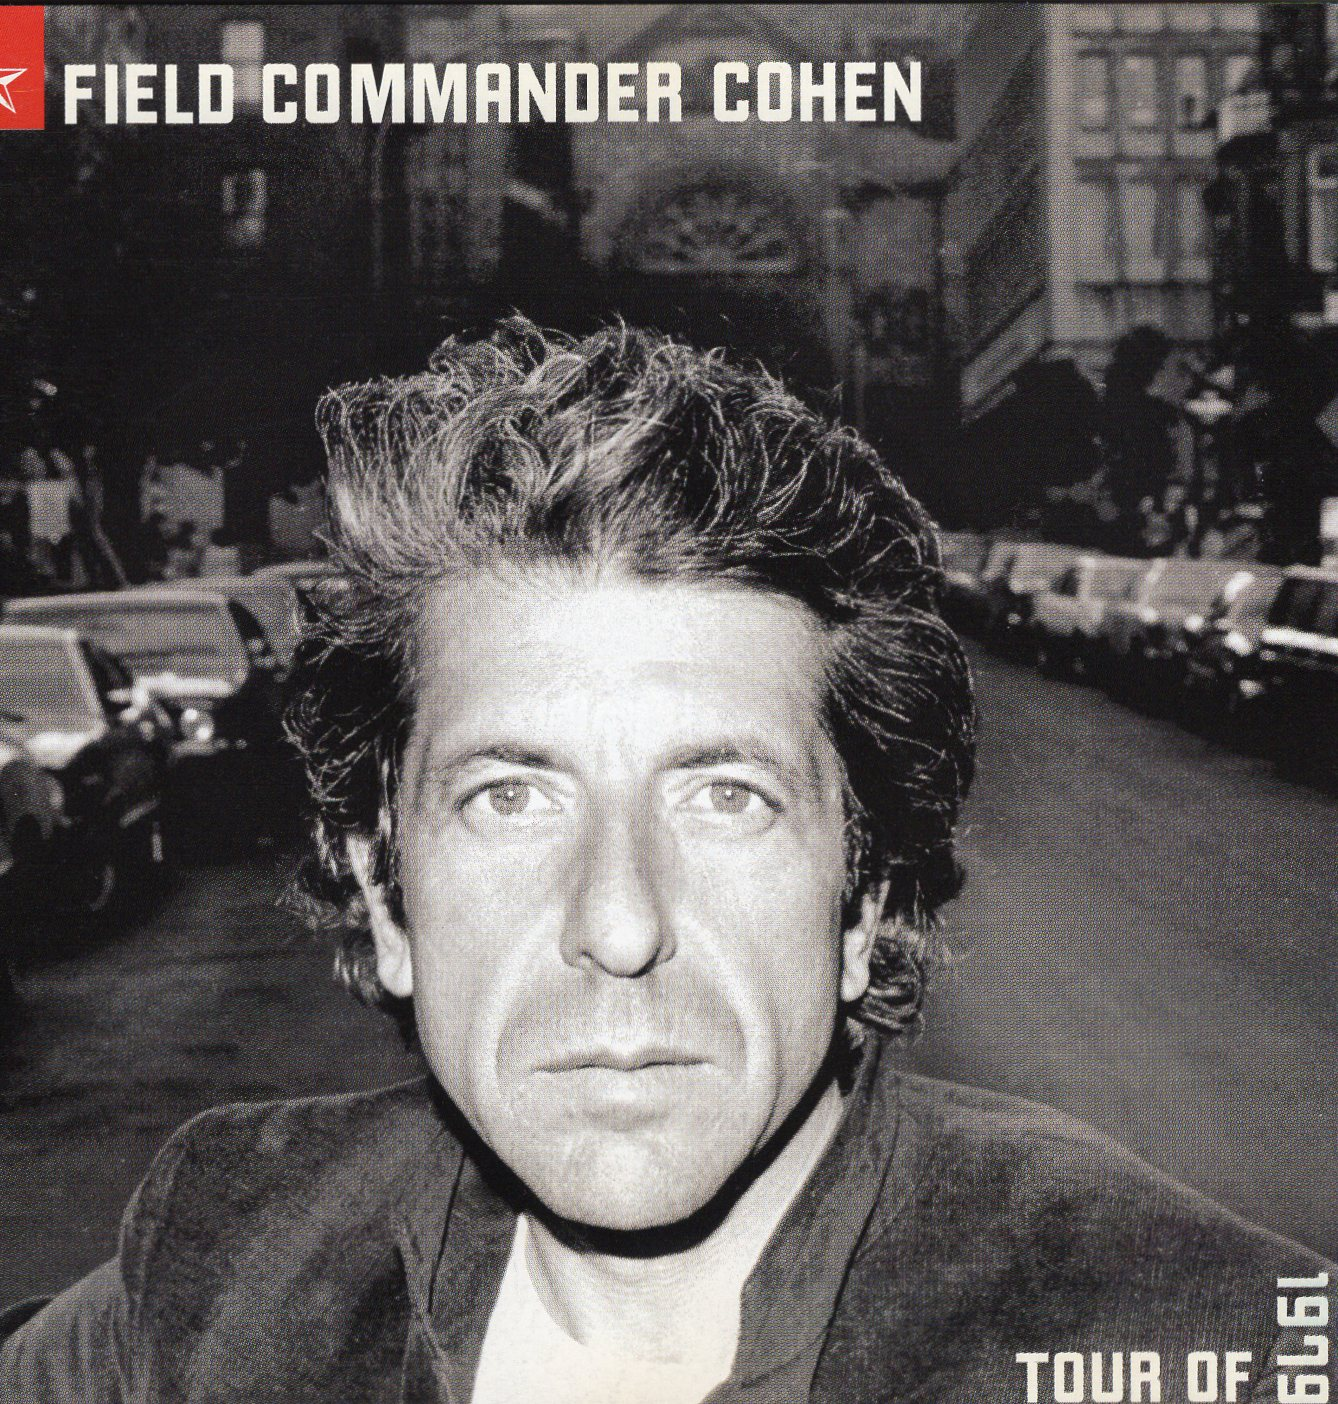 """Field Commander Cohen Tour Of 1979"" Field Commander Cohen"